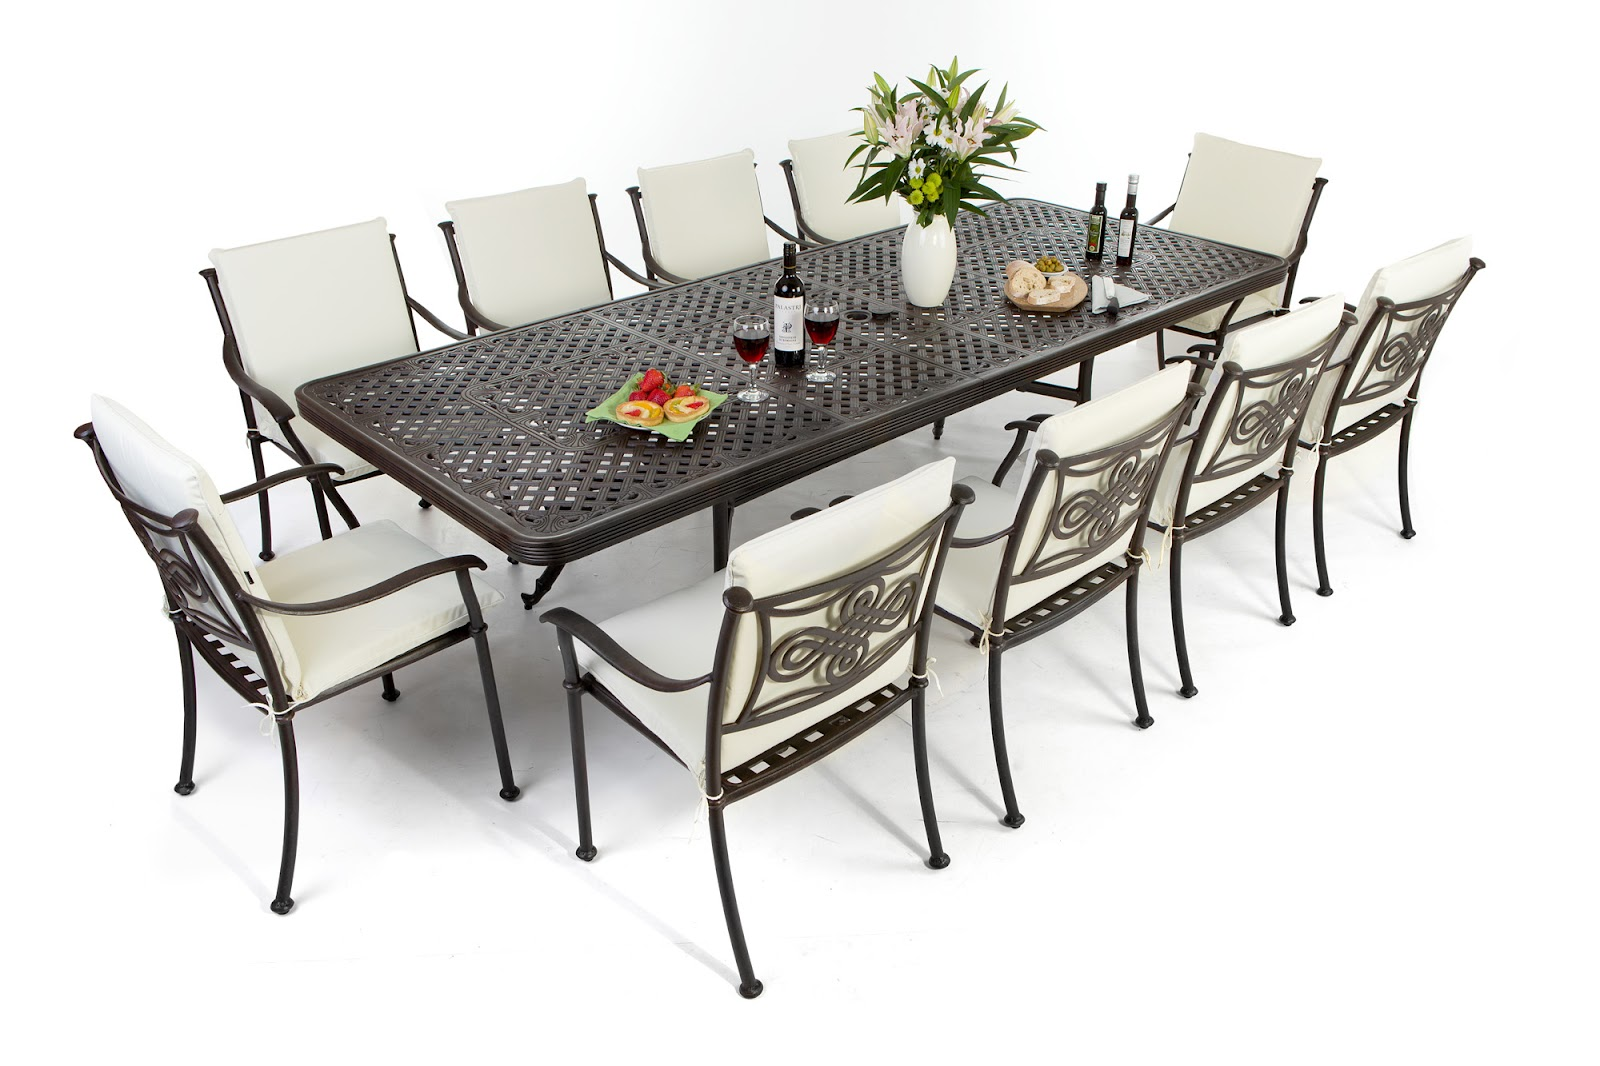 Outside edge garden furniture blog the versatile rhodes for 12 person patio table